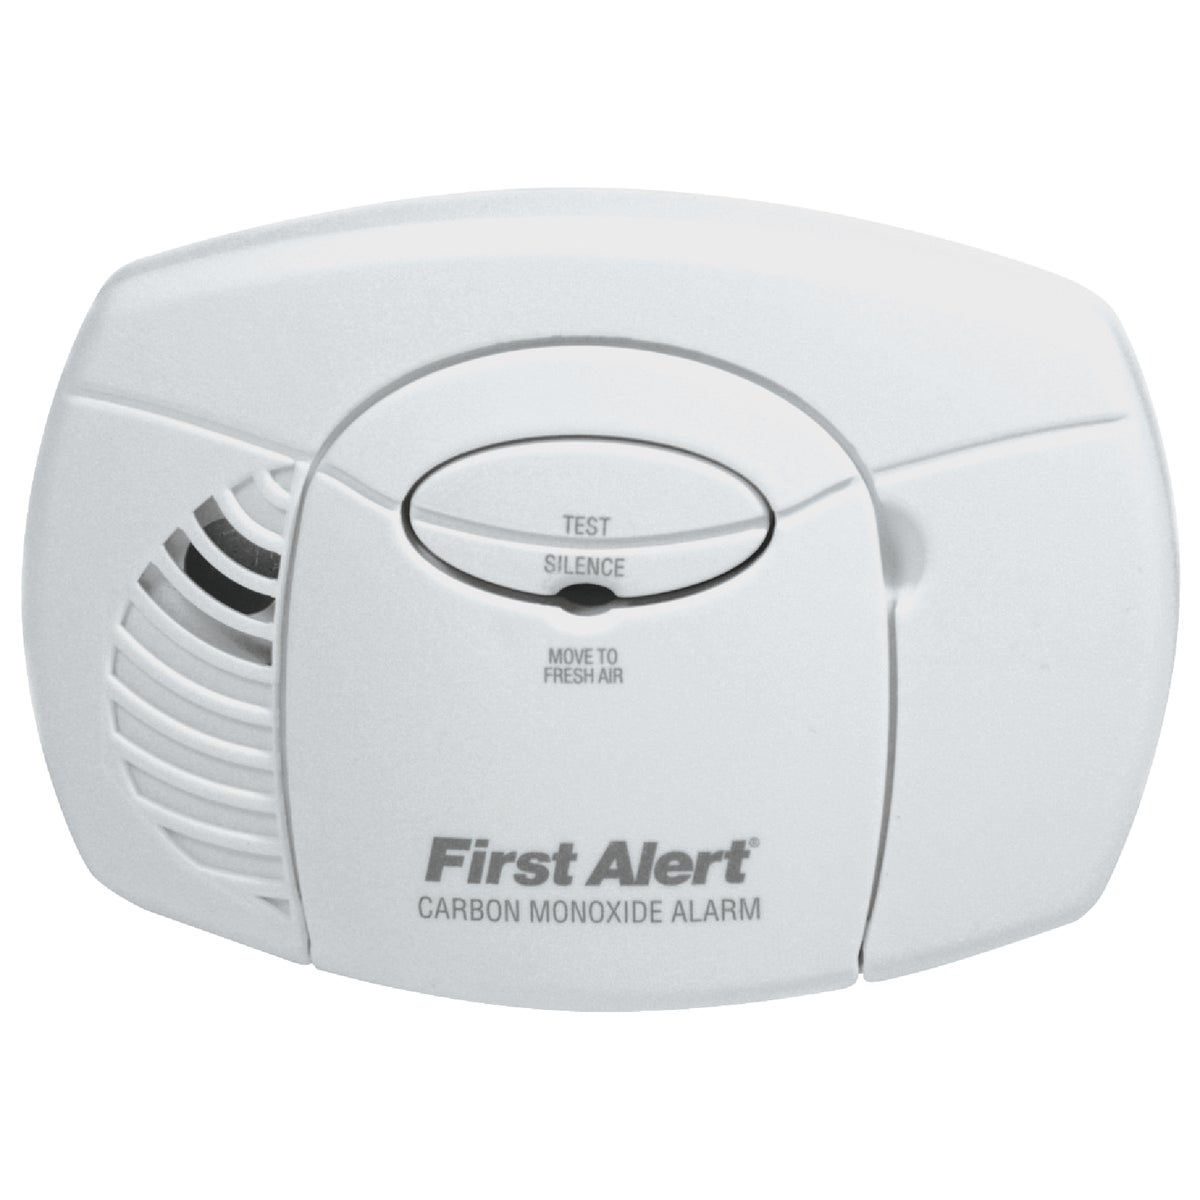 CARBON MONOXIDE ALARM - CO400 by First Alert  Jarden